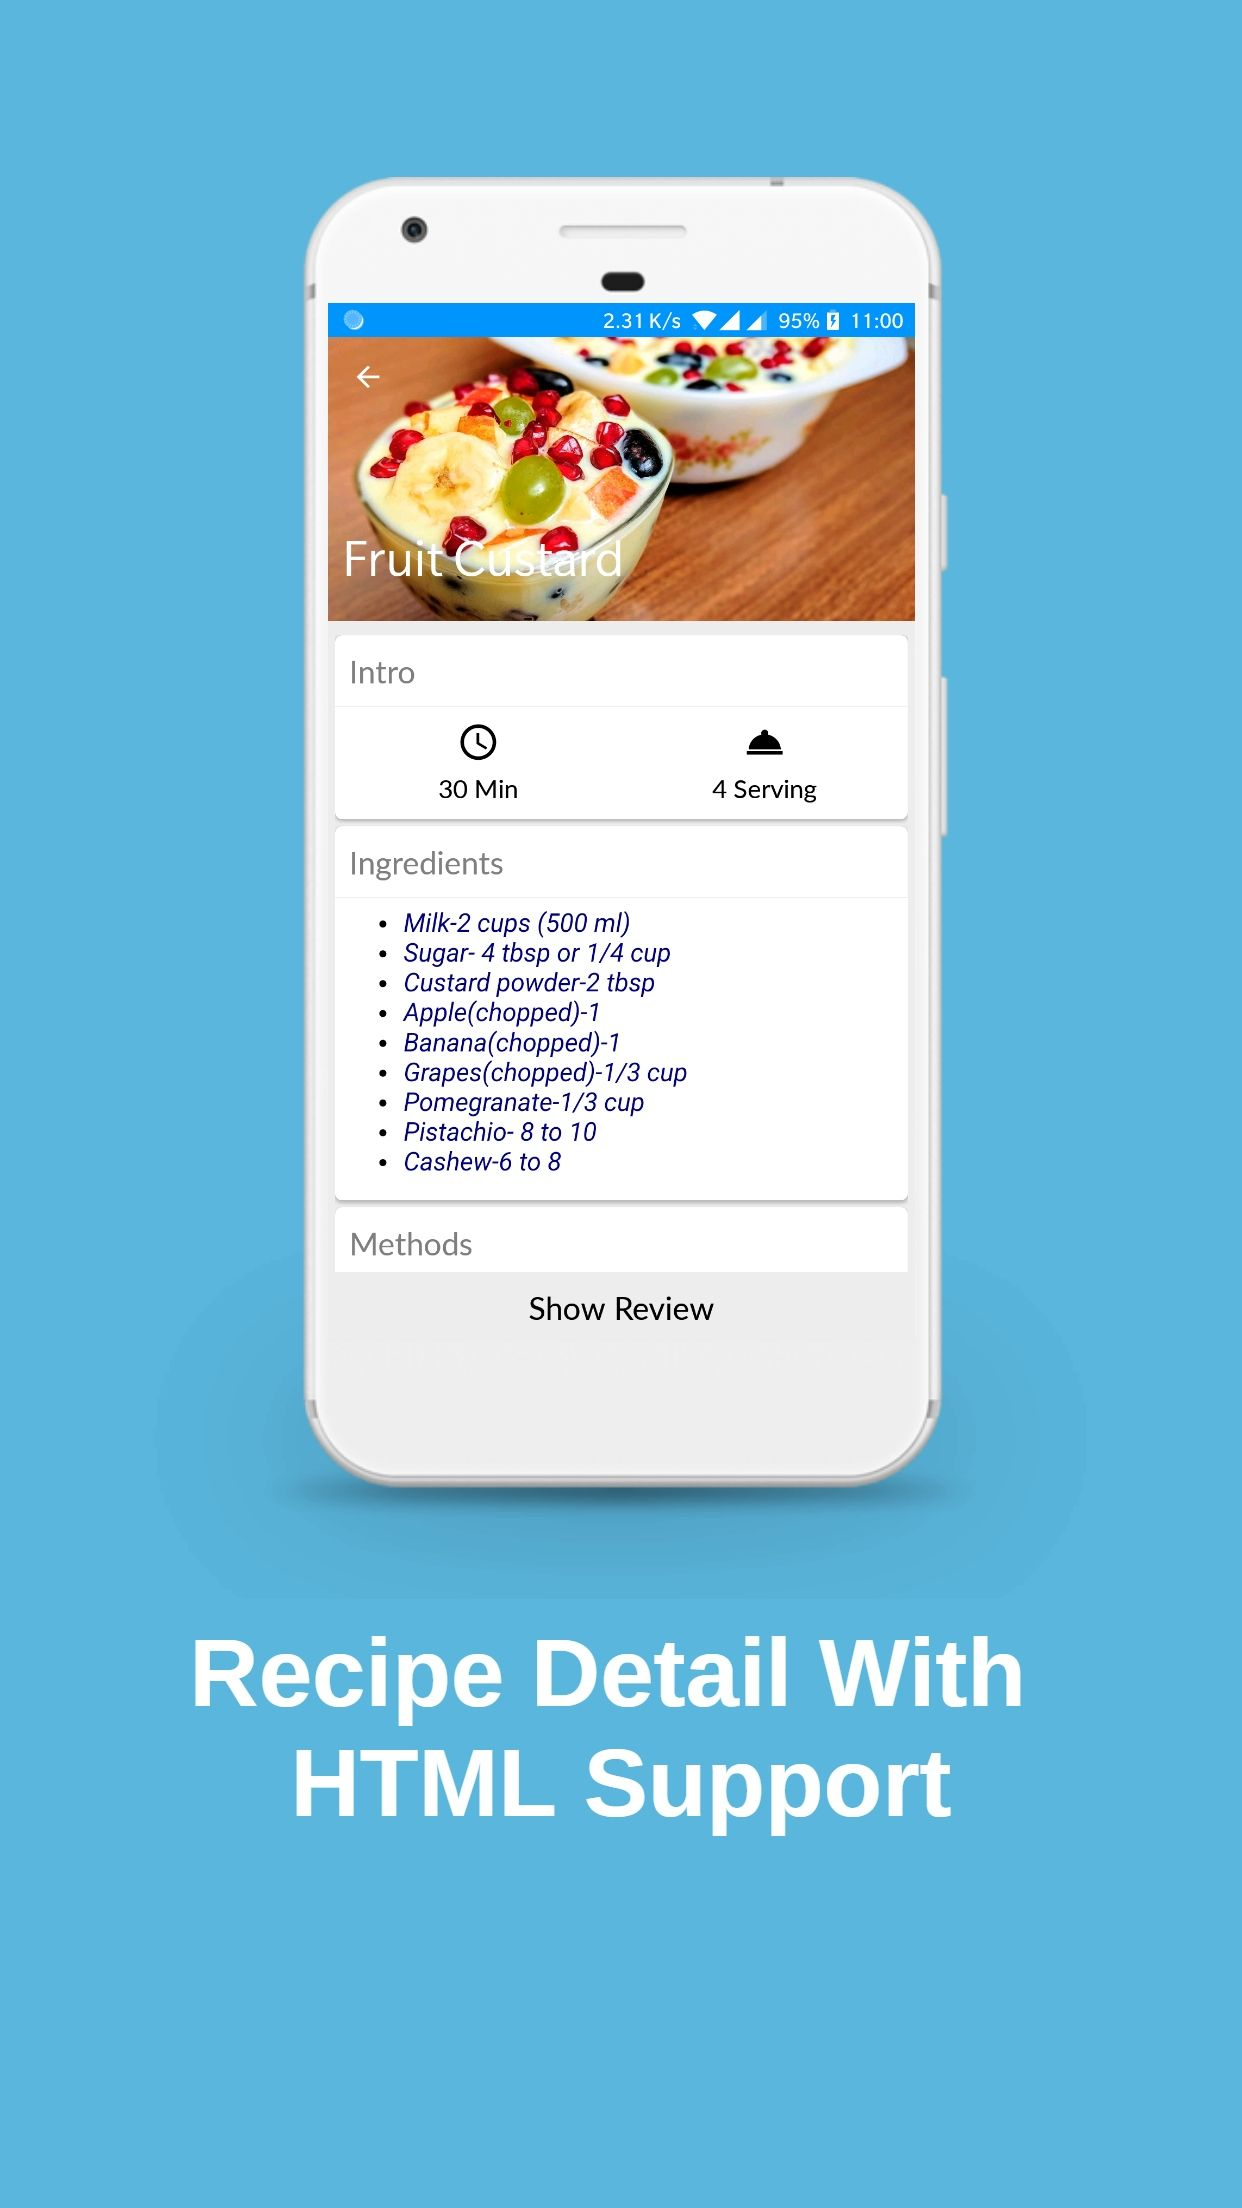 Recipes Book - Android Source Code Screenshot 5